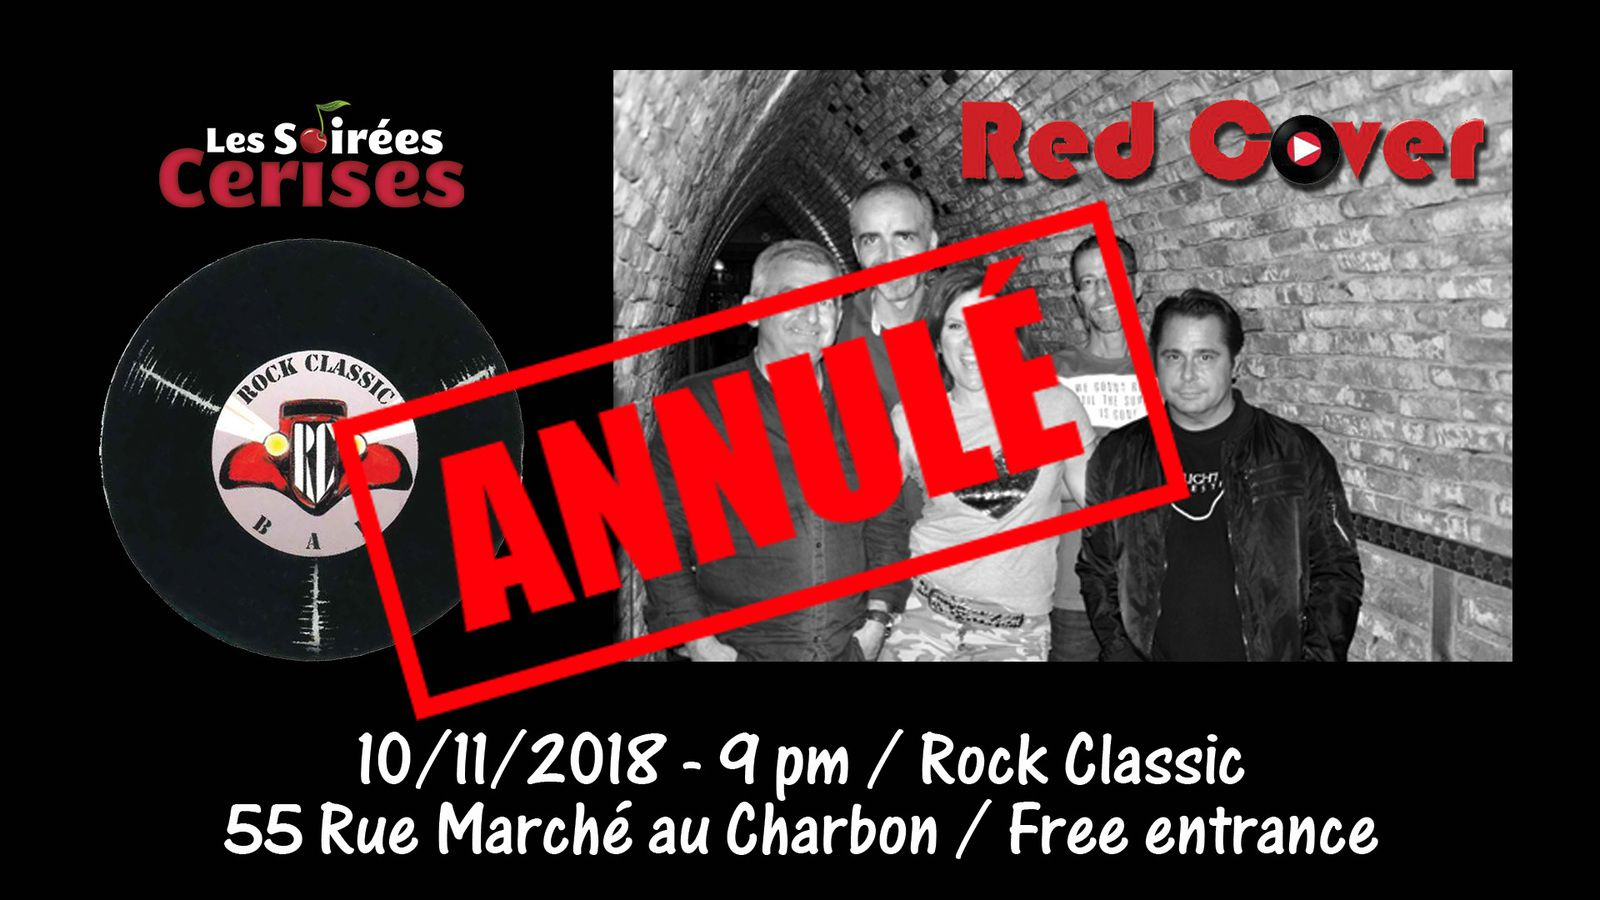 ▶ Red Cover @ Rock Classic - 10/11/2018 - annulé !